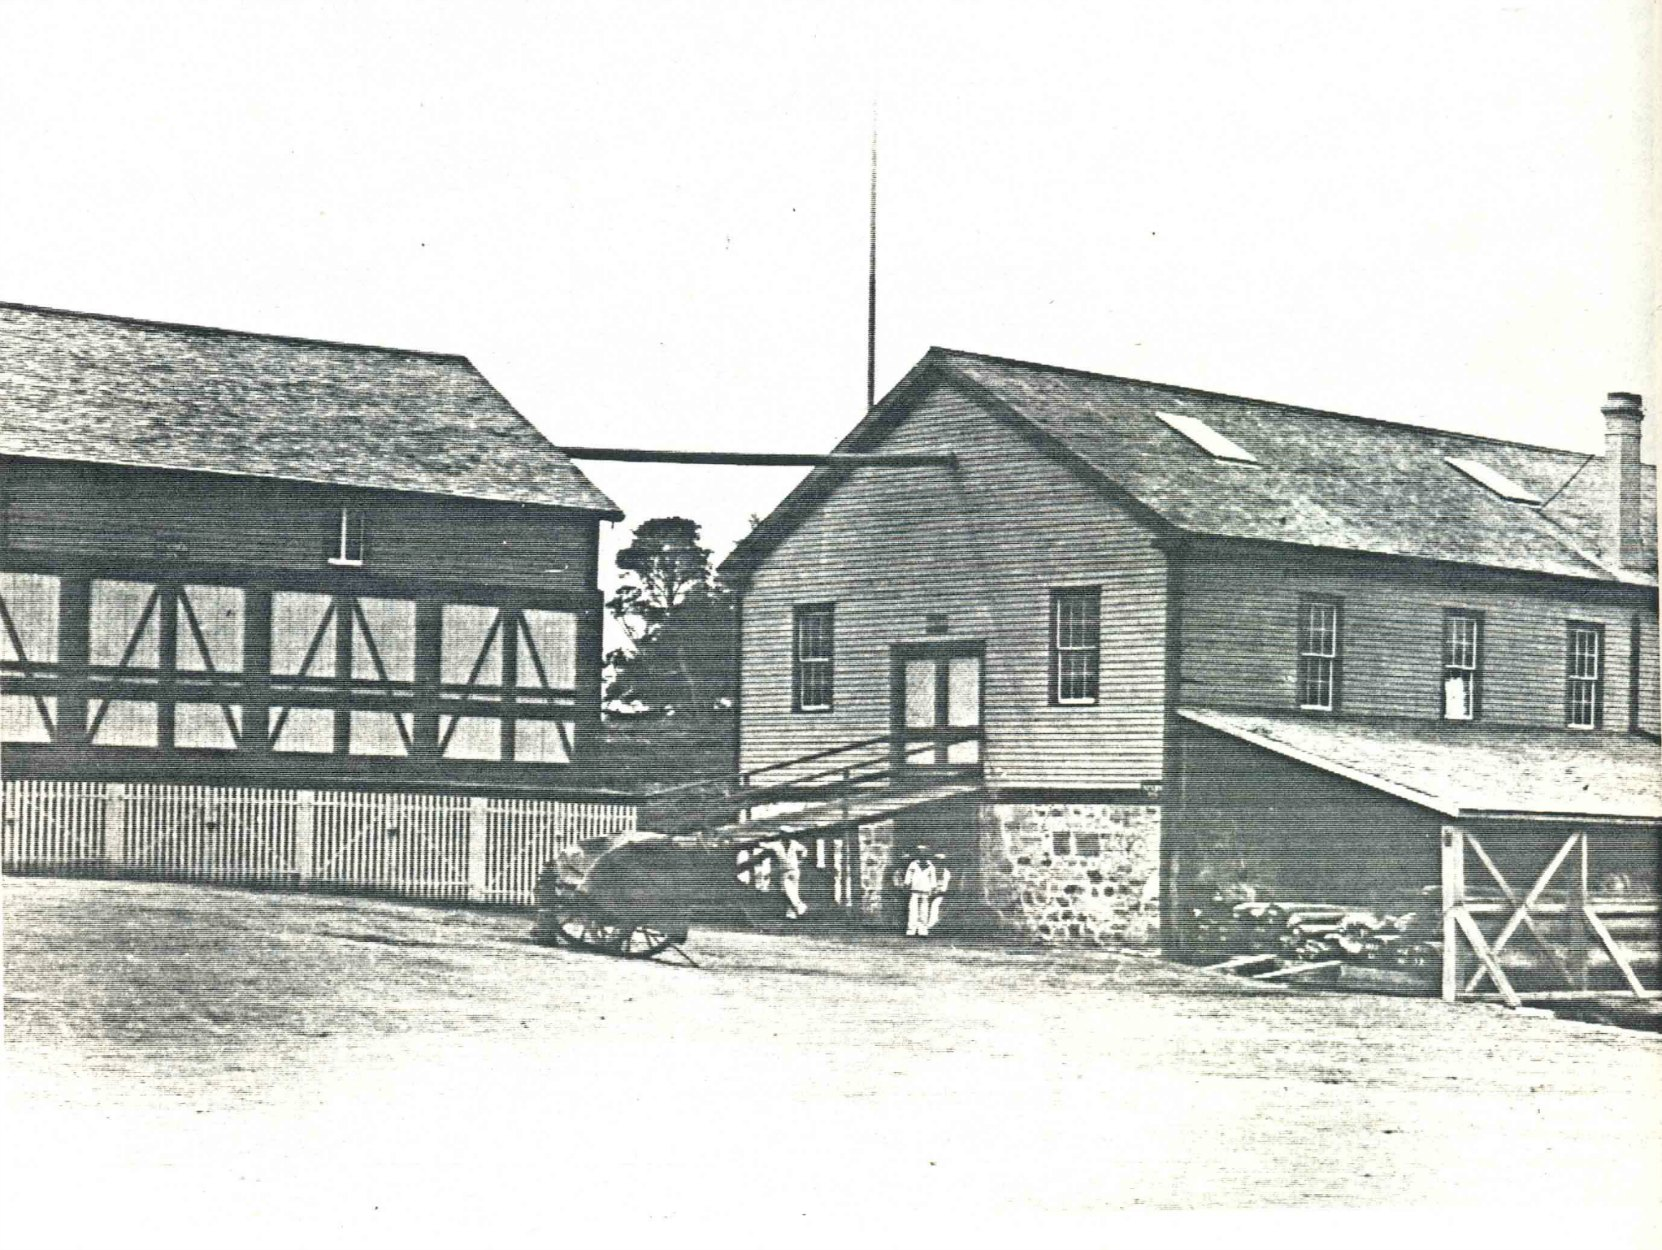 The Royal Navy store house/sail loft where James Frederick Bailey was shot by Alfred Frith. The building is no longer extant.